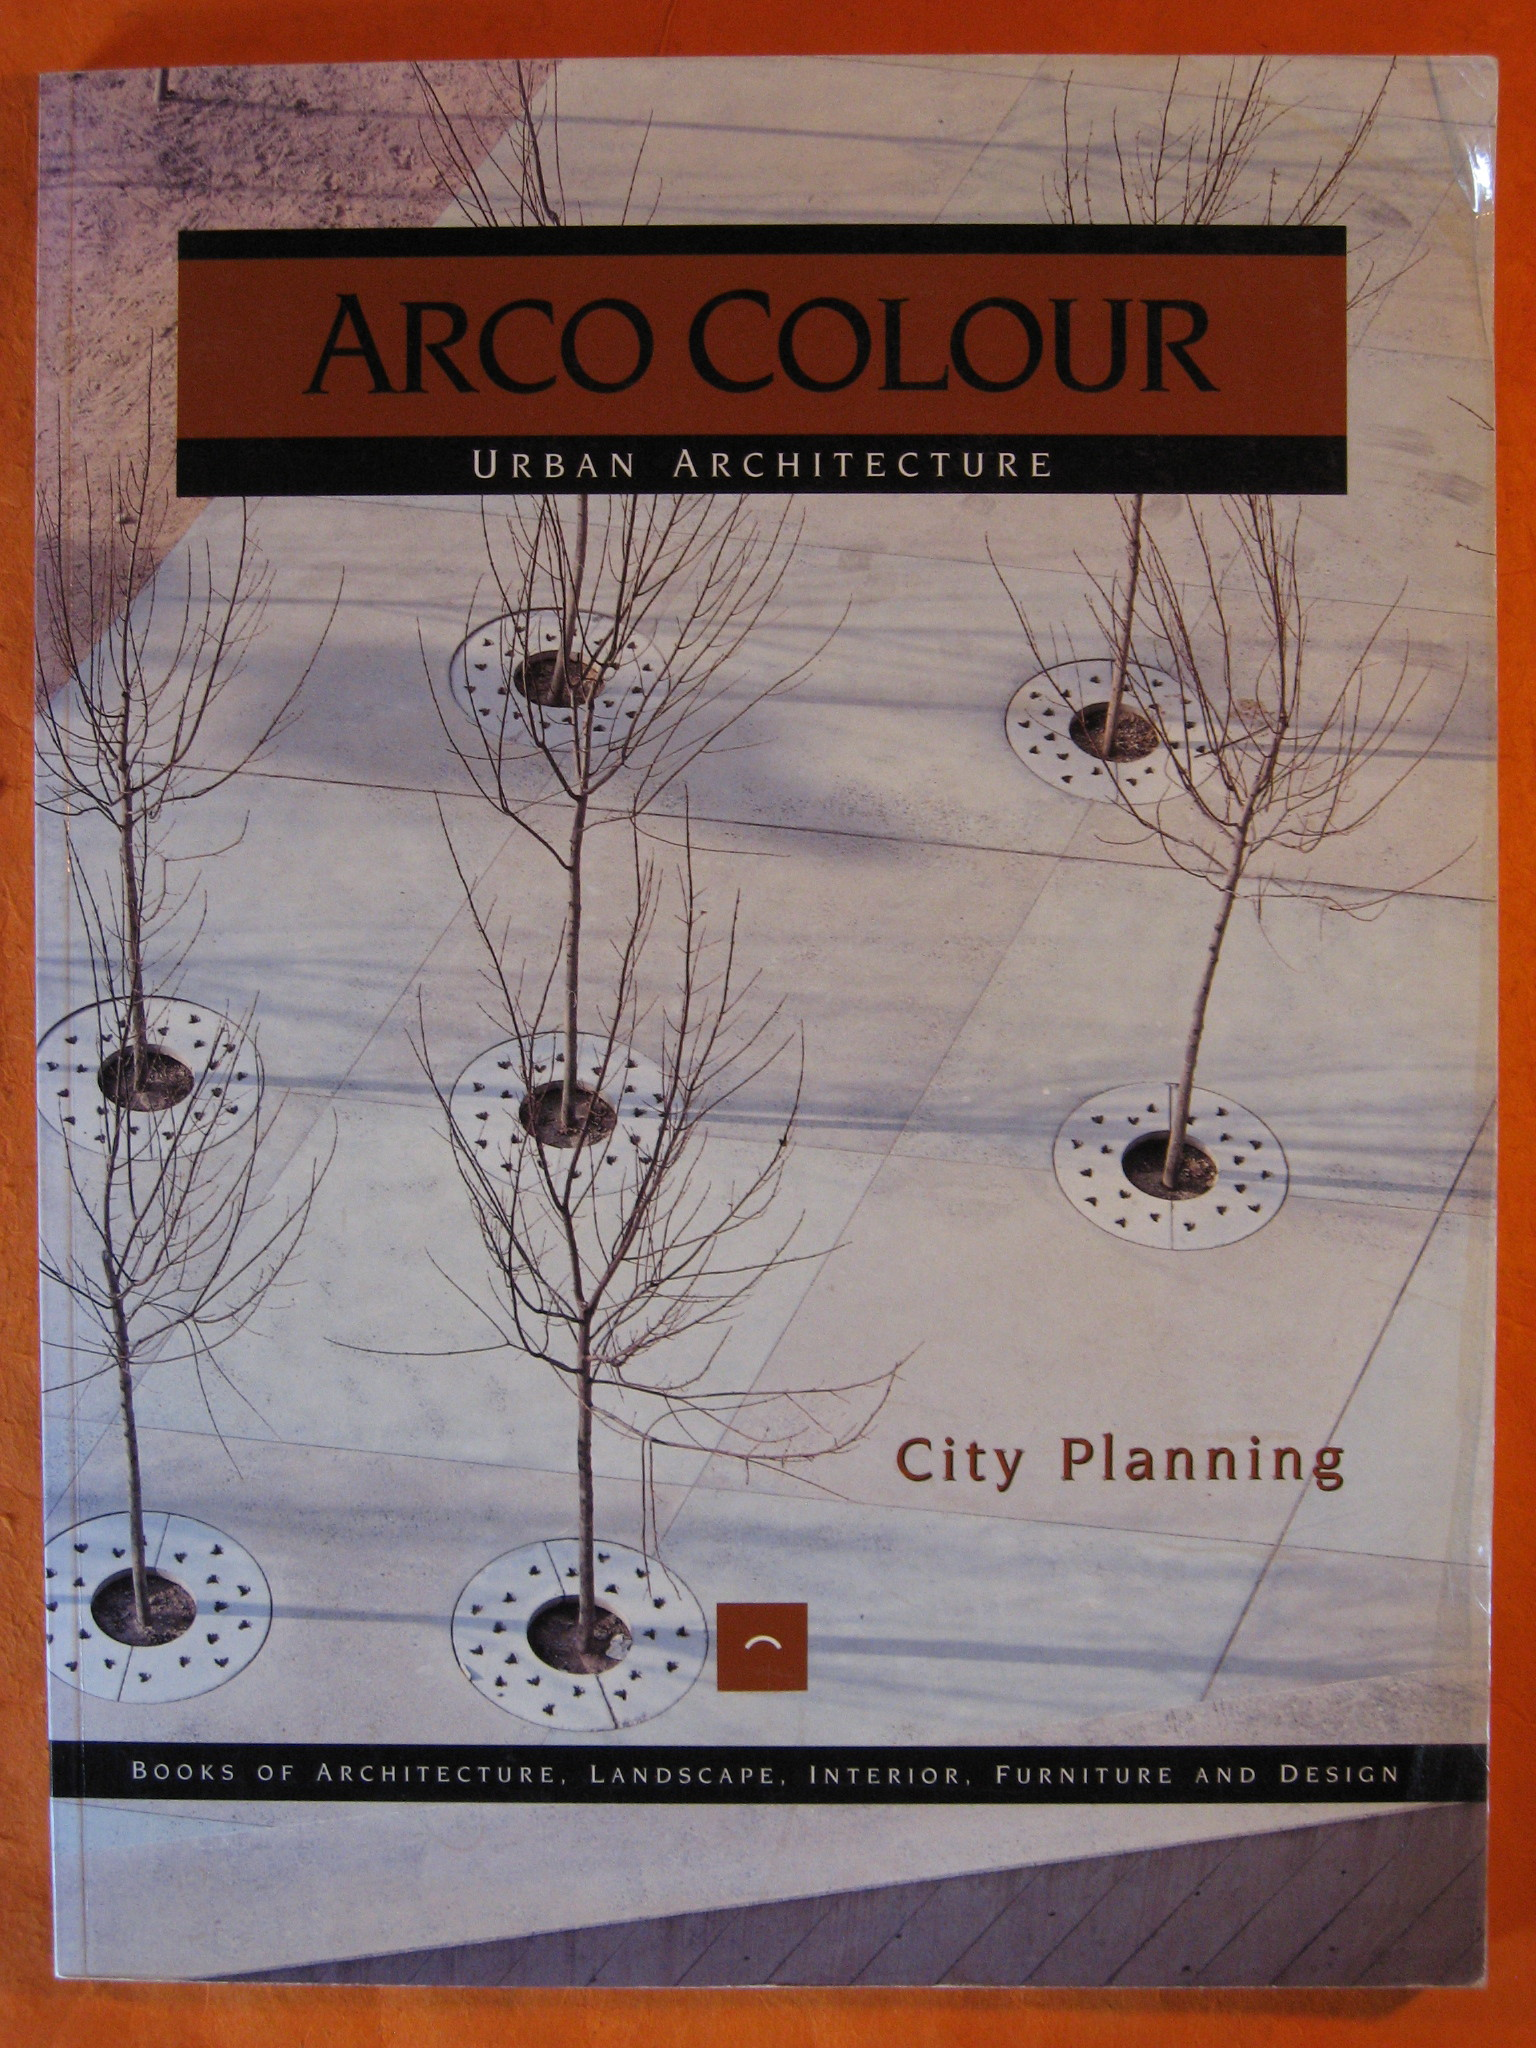 City Planning :  Arco Colour  Urban Architecture (Arco Colour Collection), Asensio Cerver, Francisco